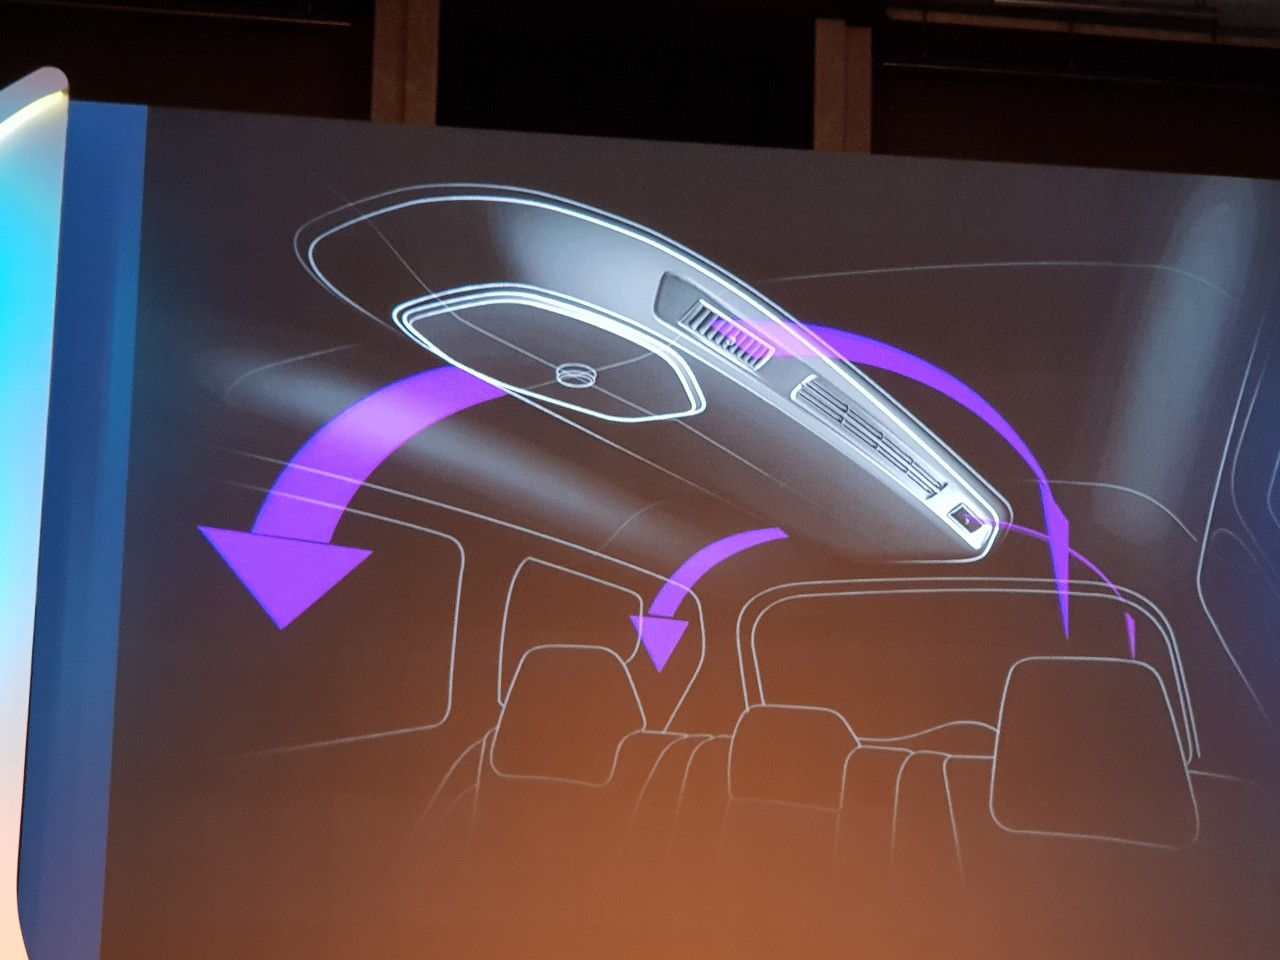 Mahindra Marazzo roof-mounted air vents teaser image